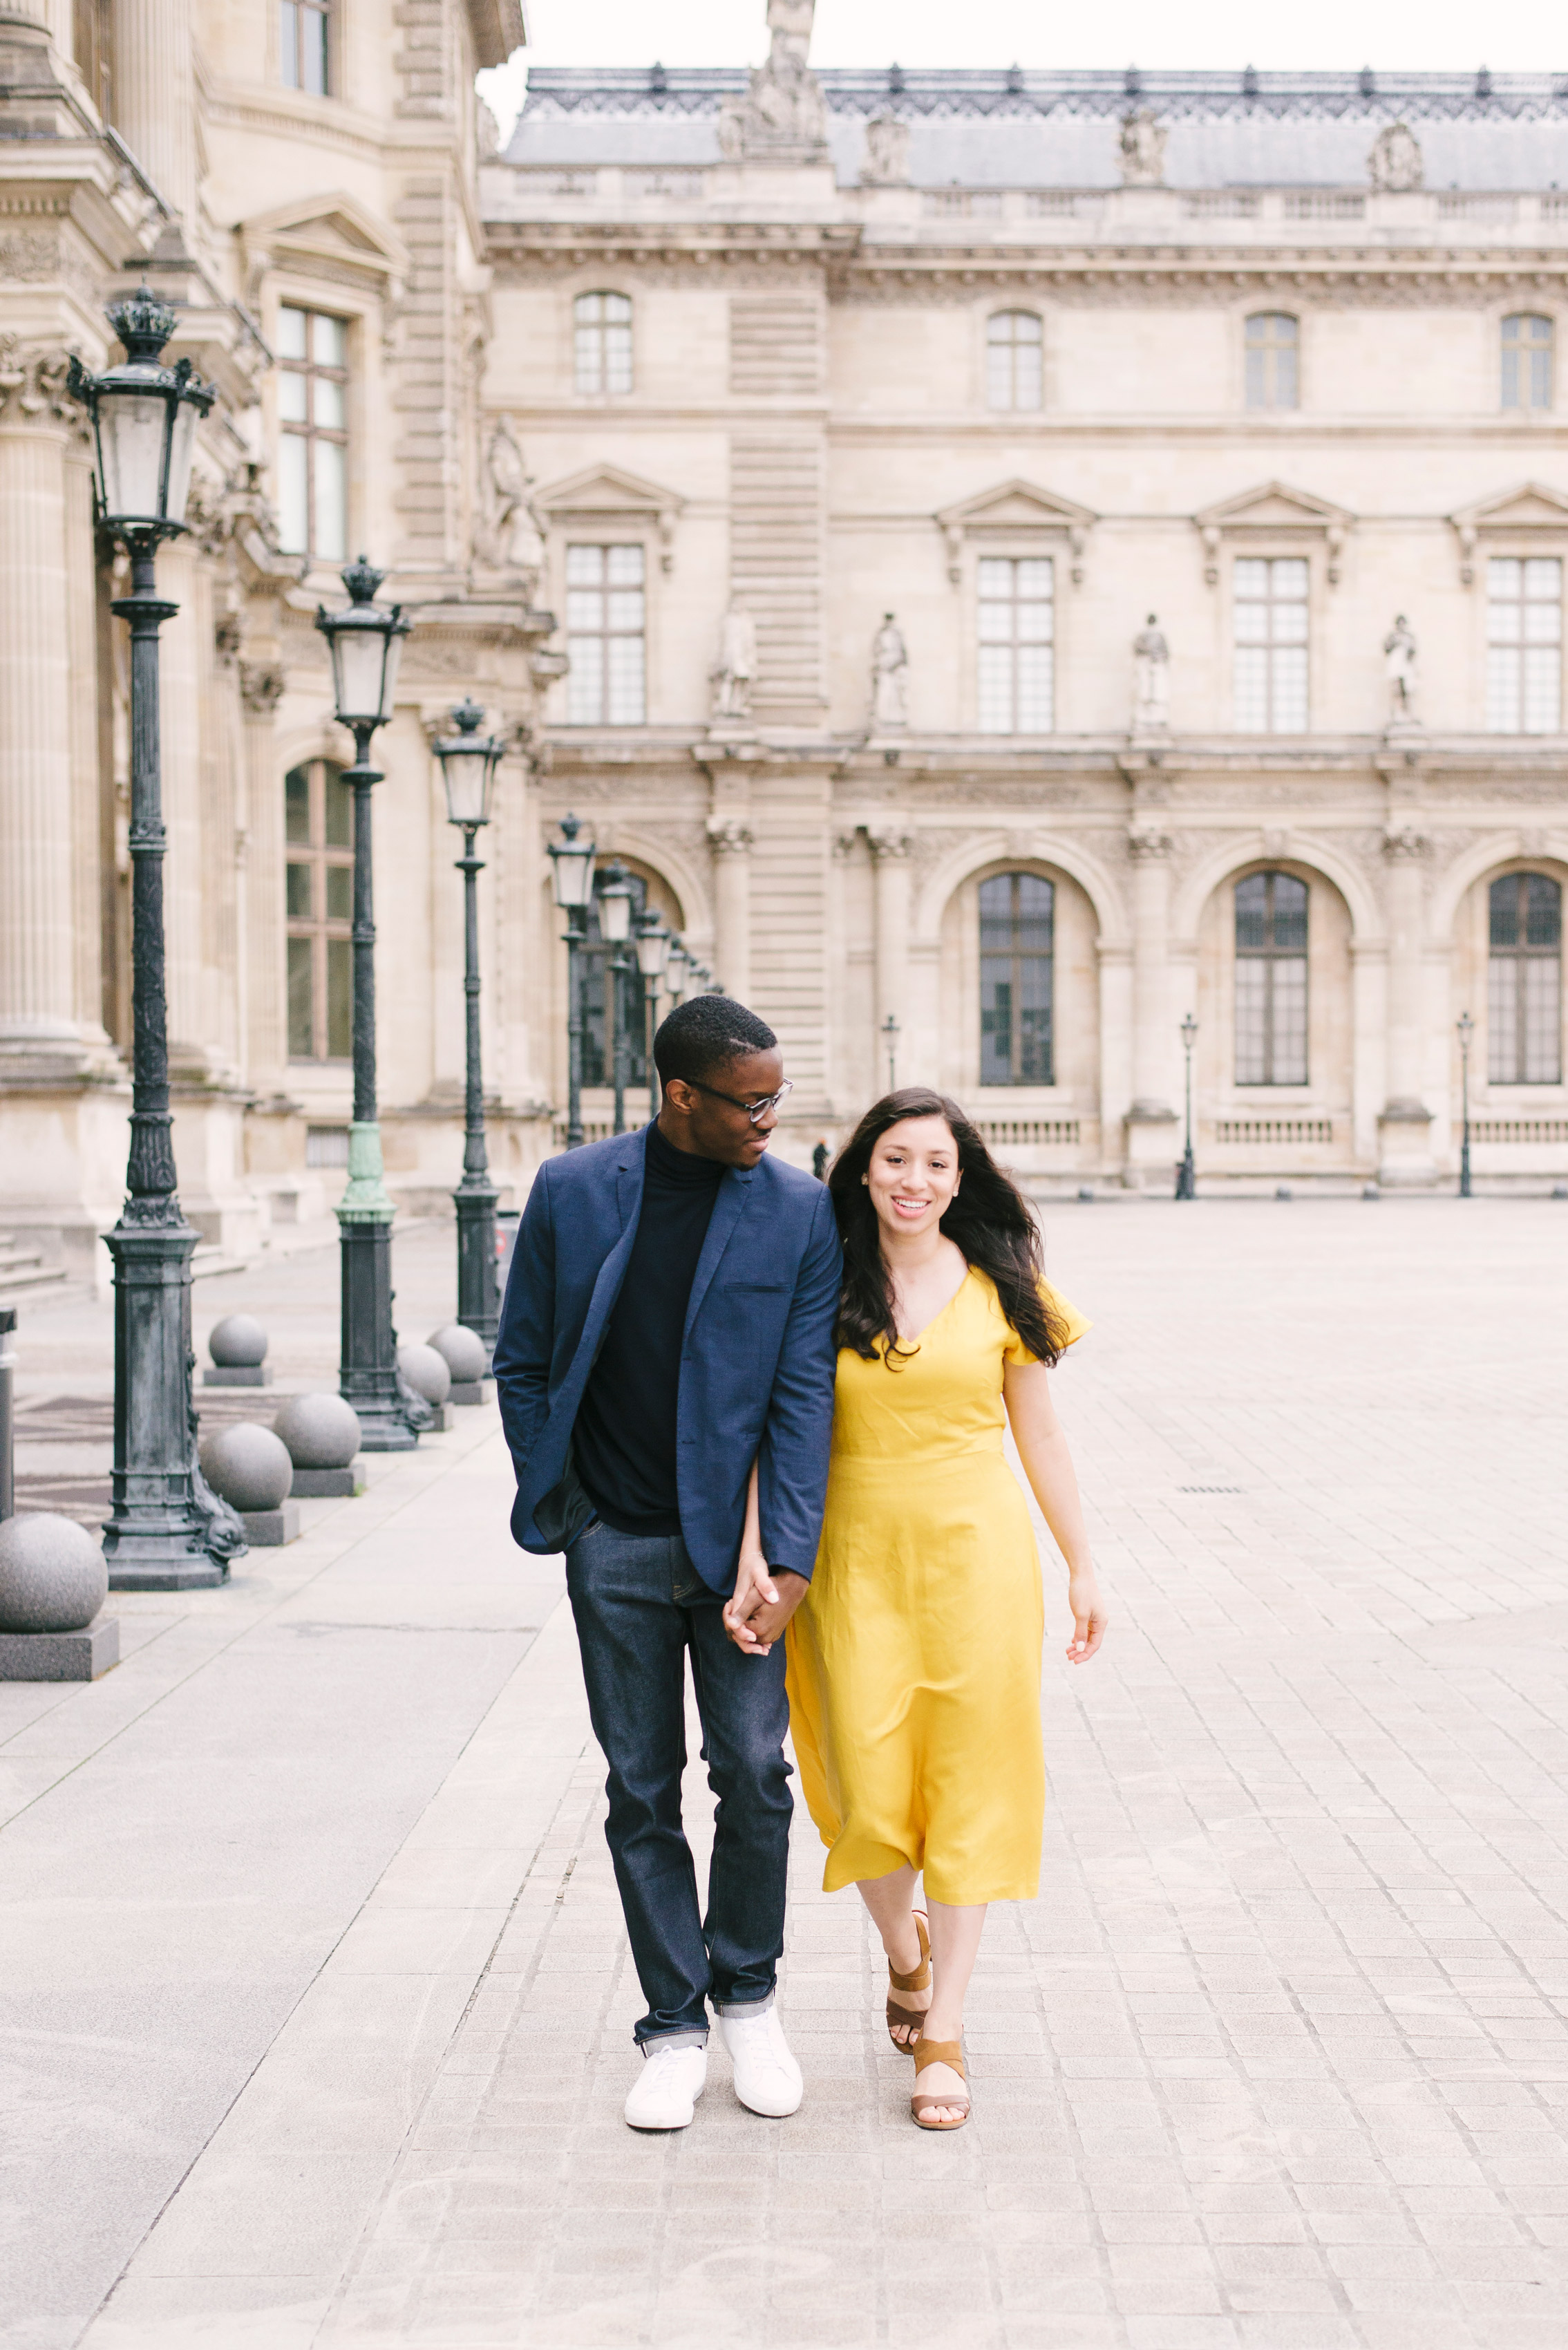 Couple-photoshoot-Paris-Pont-des-arts-Louvre-PalaisRoyale-061.jpg